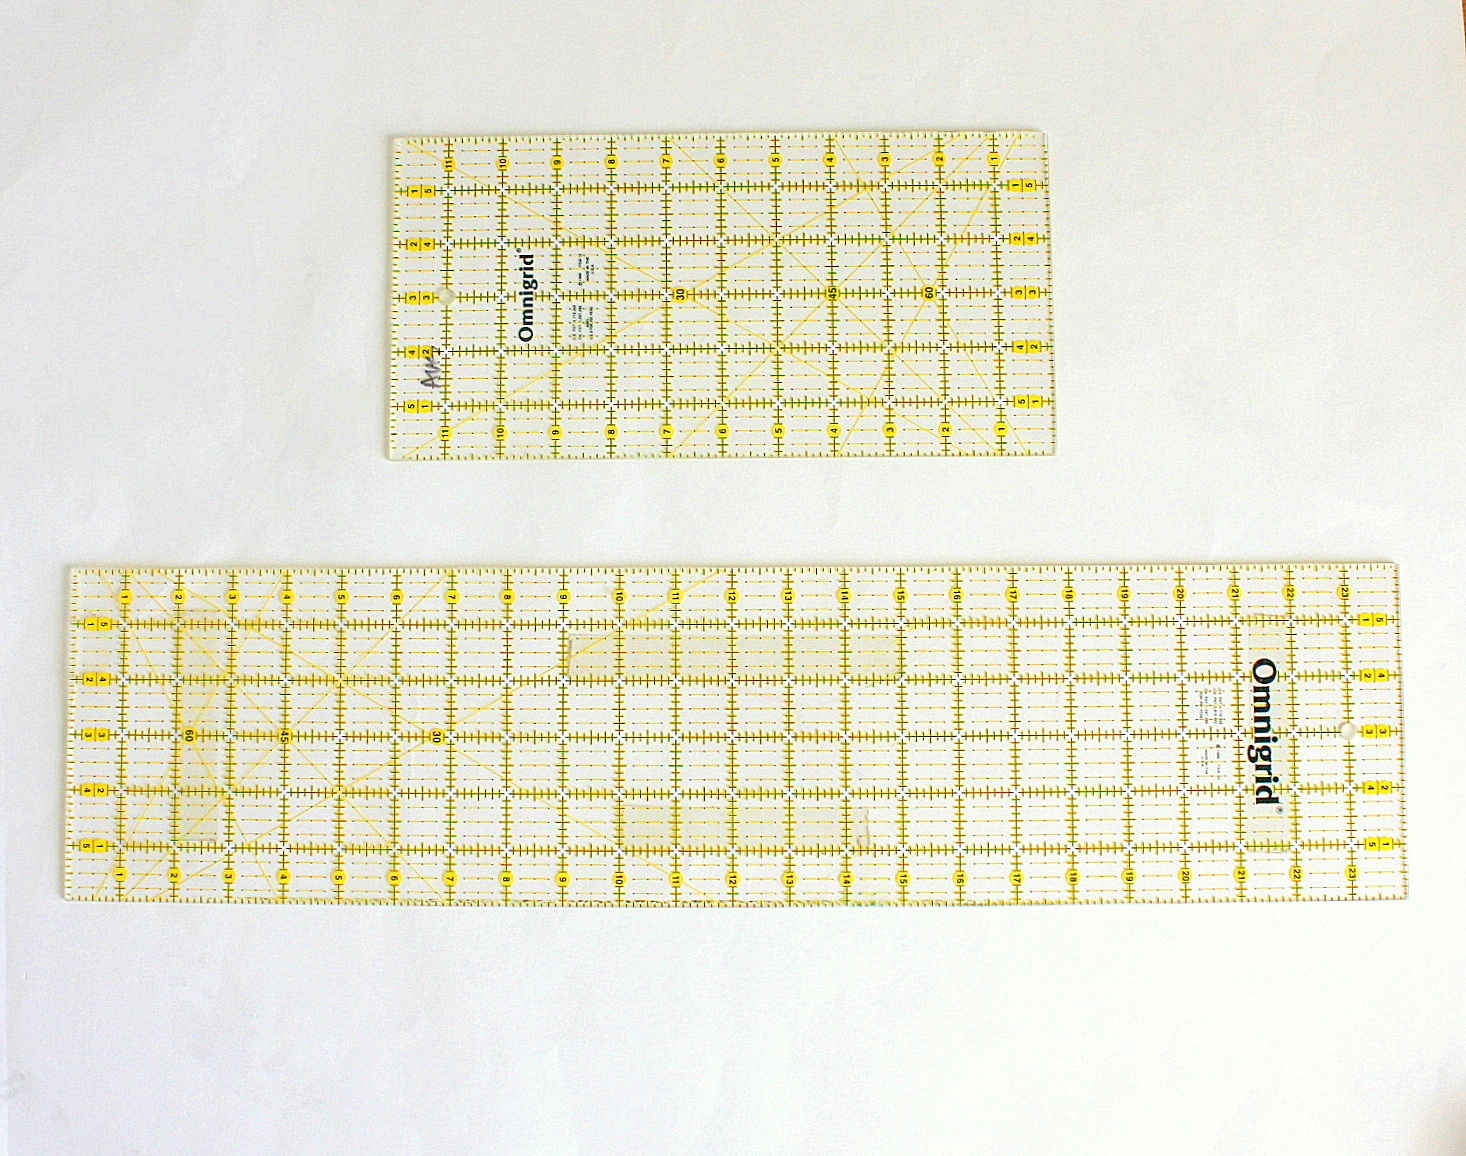 Basic Quilting Supplies : cheap quilting rulers - Adamdwight.com